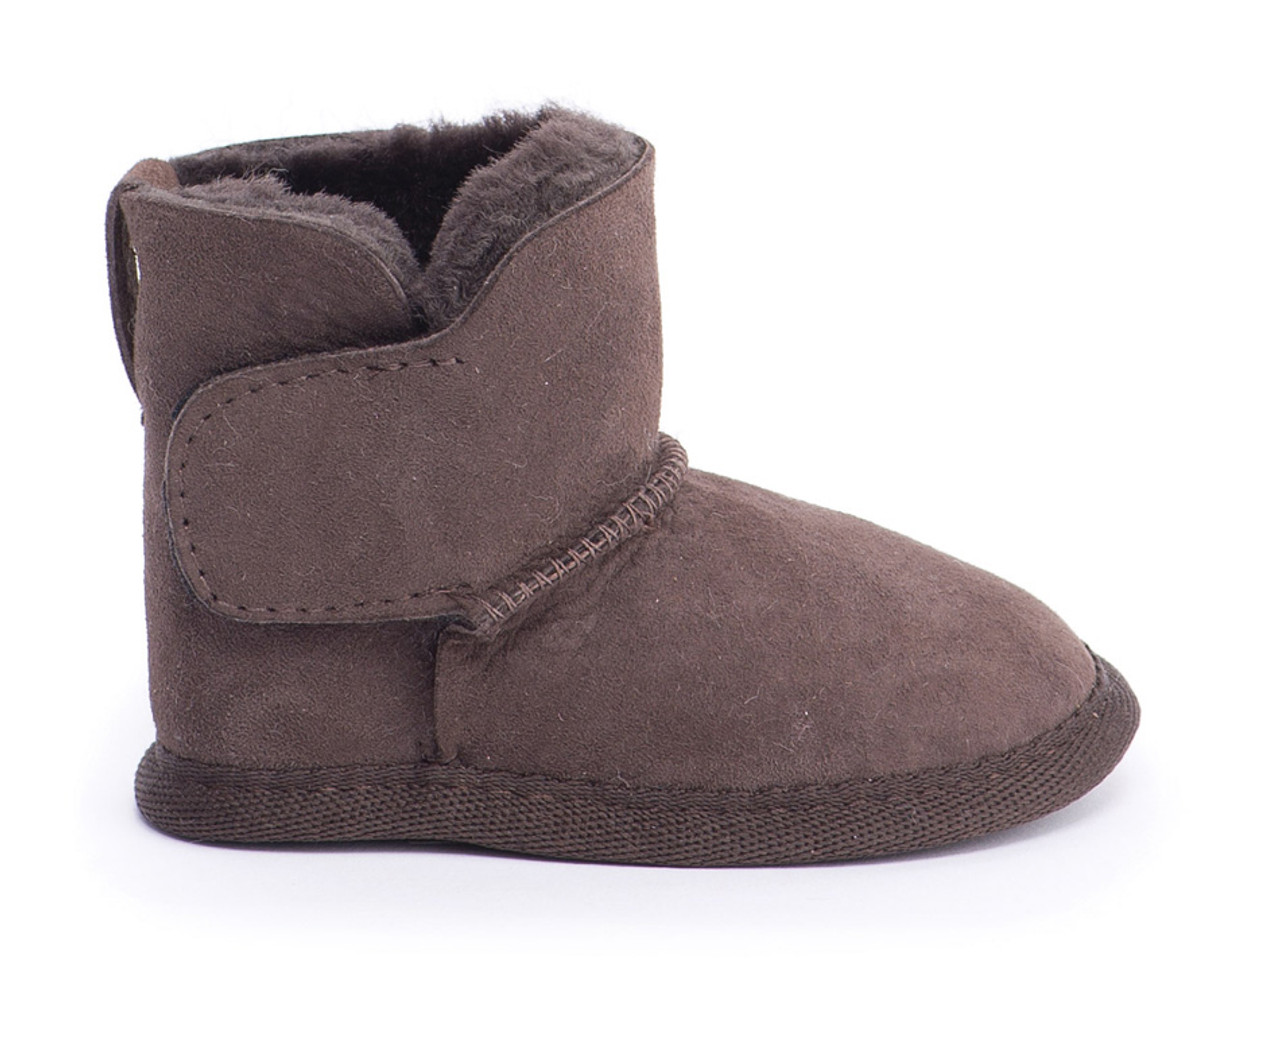 5be01a8f6cf0e Emu Baby Bootie - Chocolate (LAST PAIR LEFT - SIZE 0-6M) - Bubbalooz